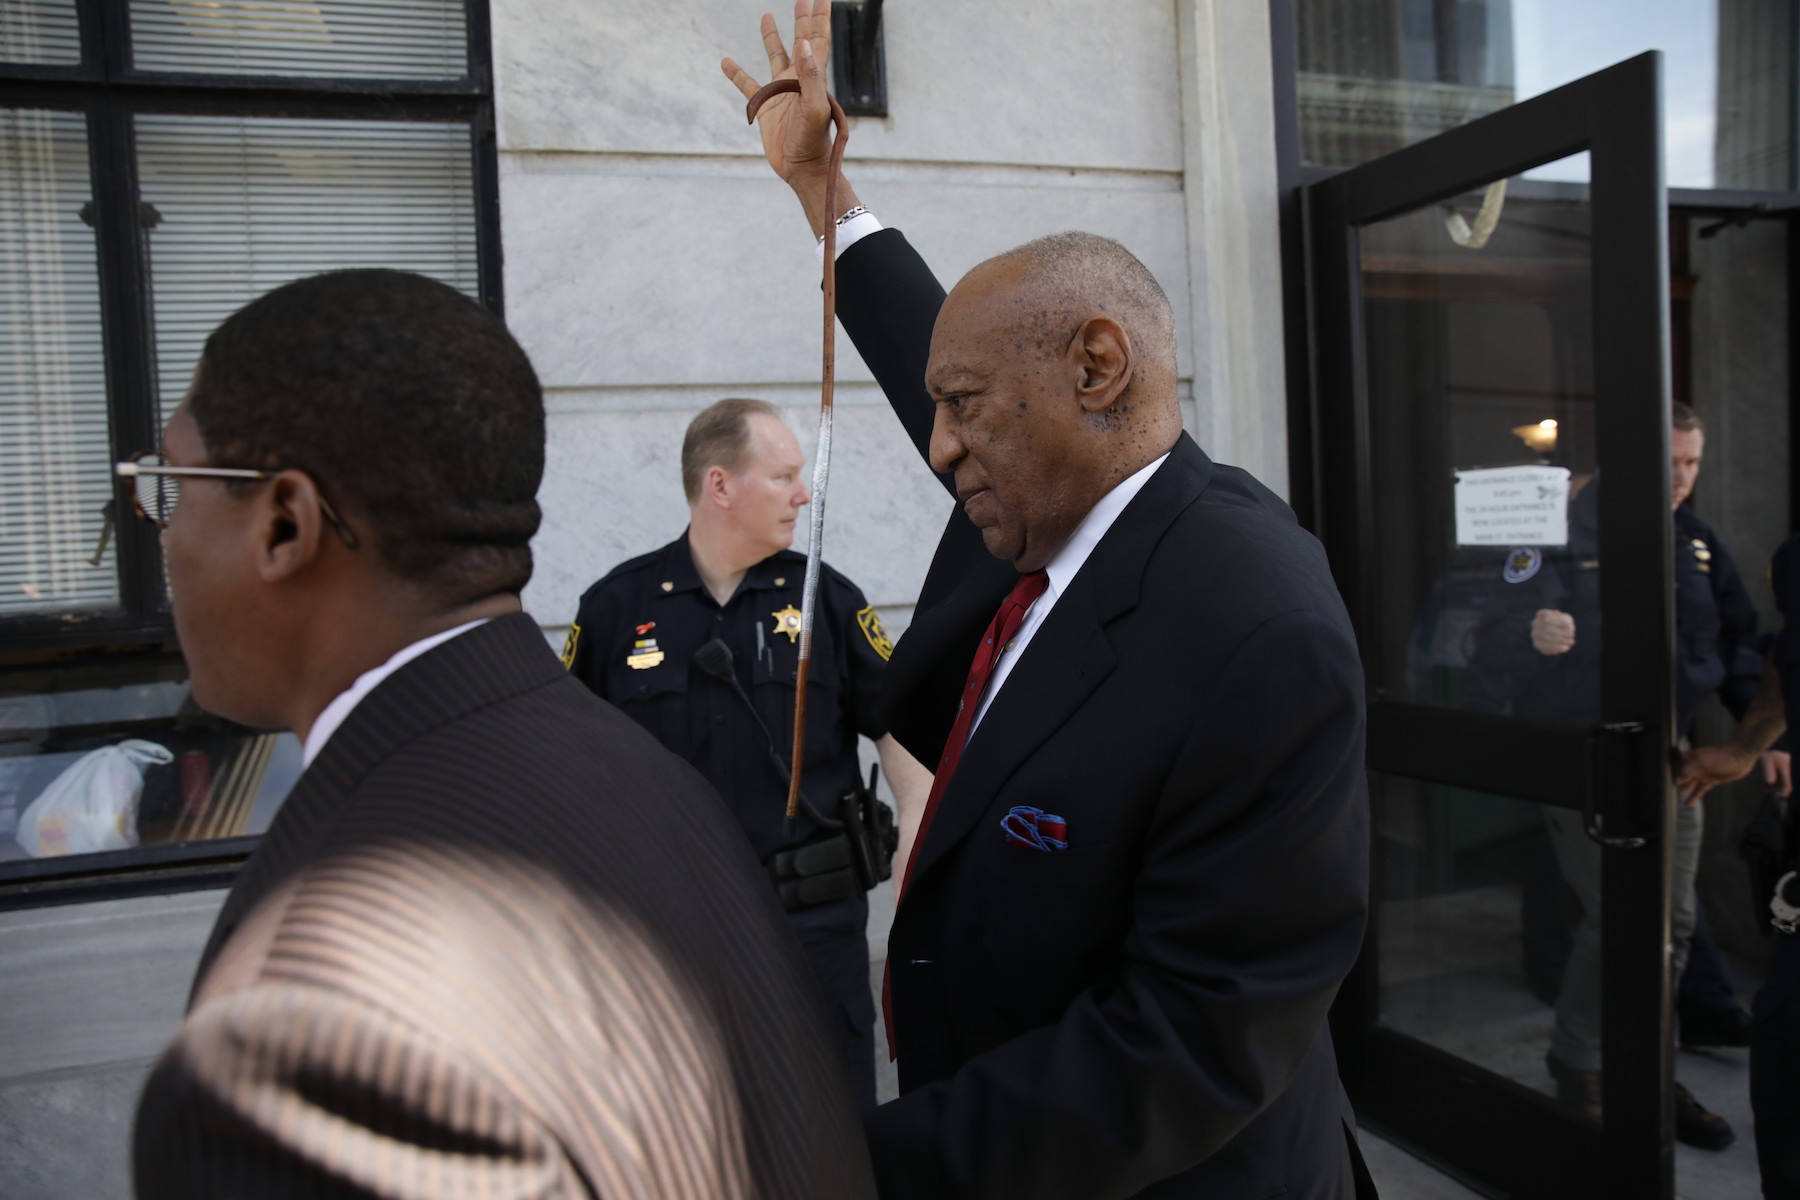 <div class='meta'><div class='origin-logo' data-origin='none'></div><span class='caption-text' data-credit='Dominick Reuter/AFP/Getty Images'>Bill Cosby comes out of the Courthouse after the verdict in the retrial of his sexual assault case at the Montgomery County Courthouse in Norristown, Pennsylvania.</span></div>